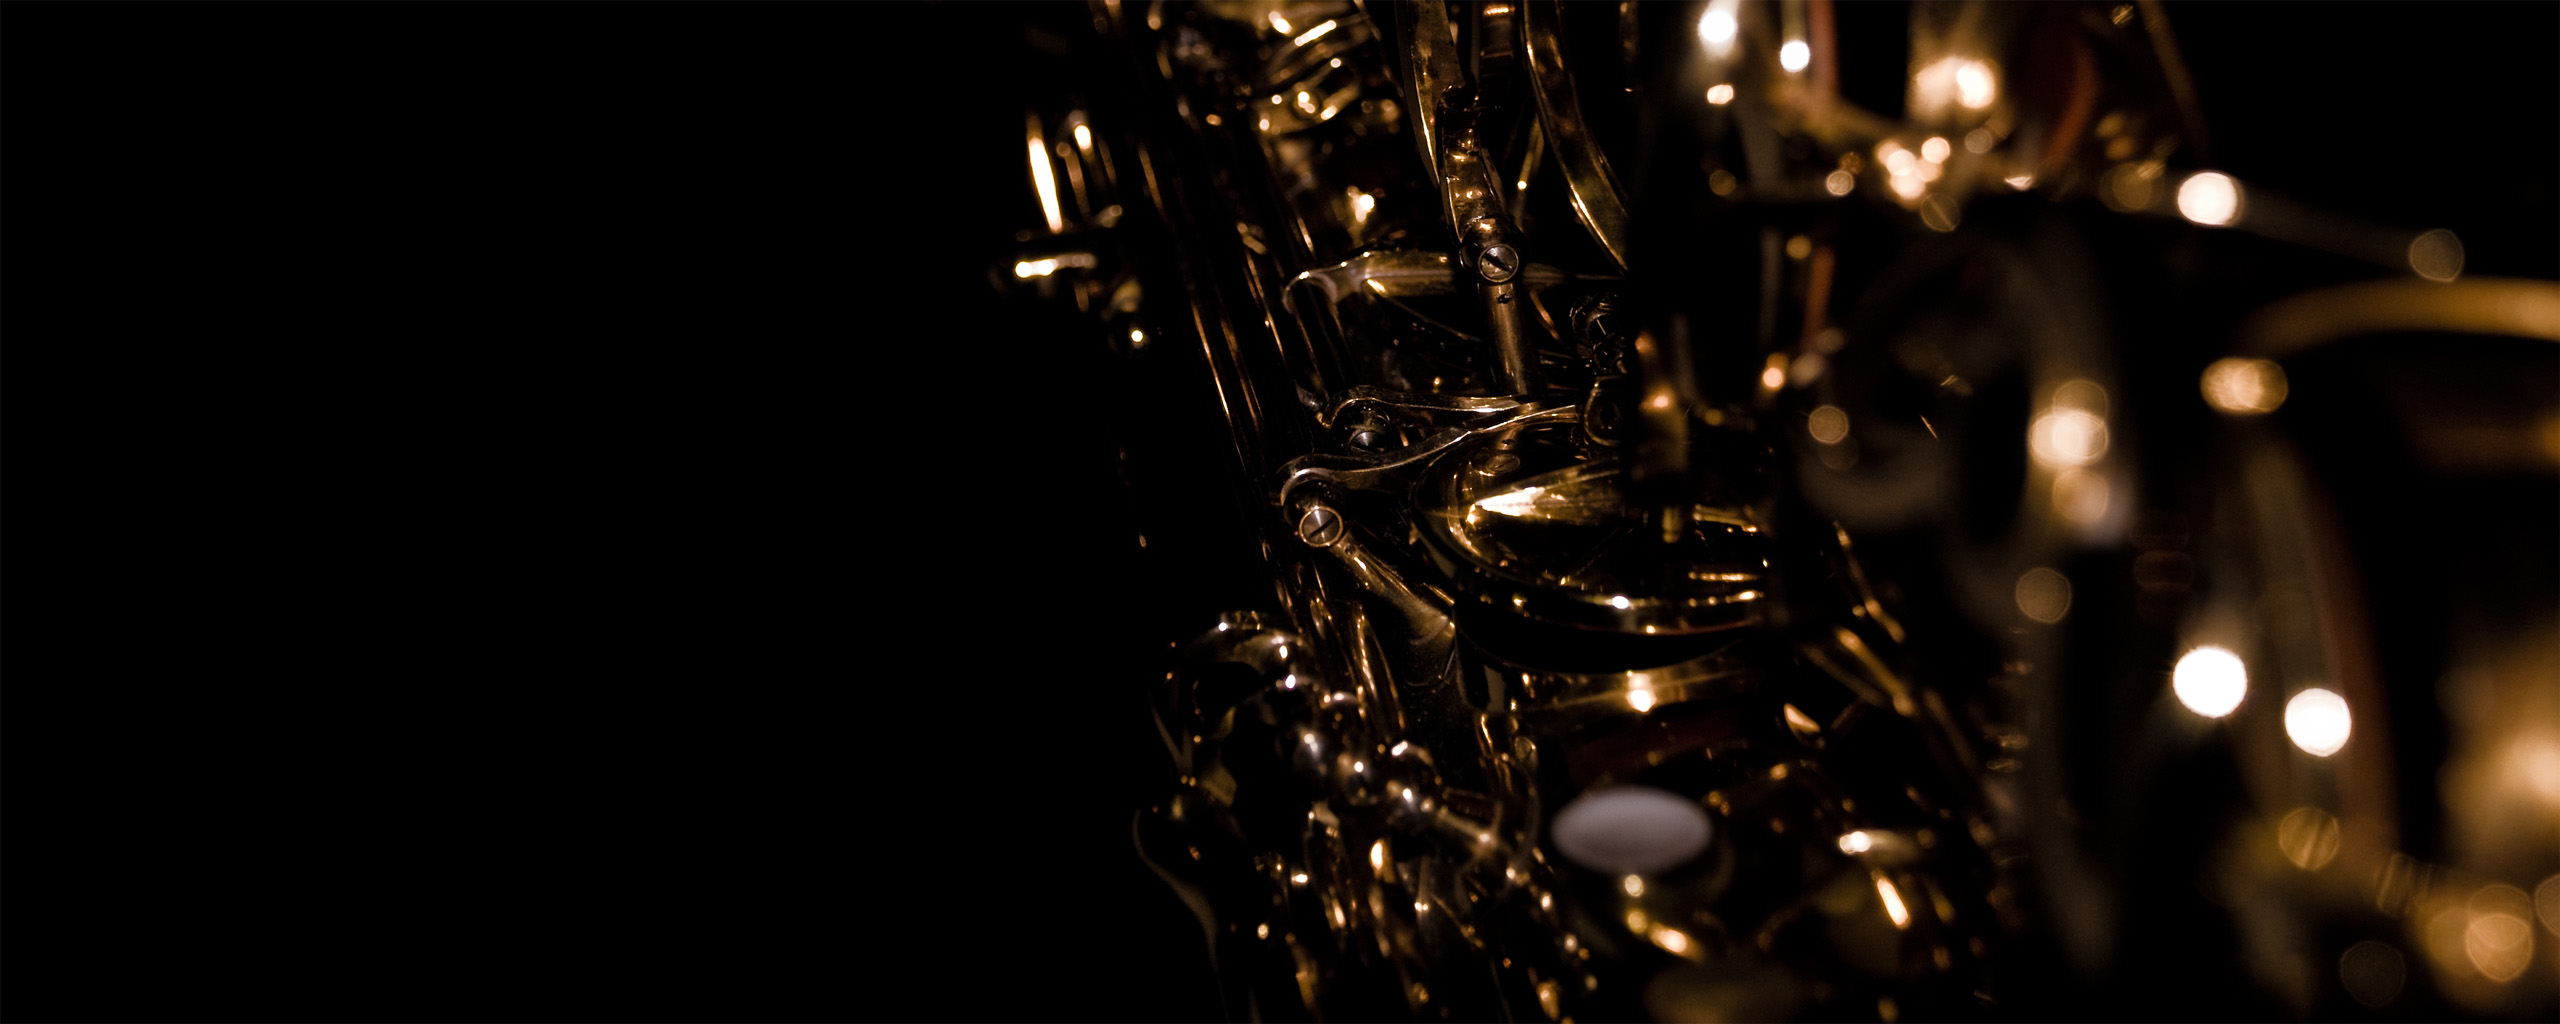 Free Saxophone Wallpaper Hd ? Long Wallpapers